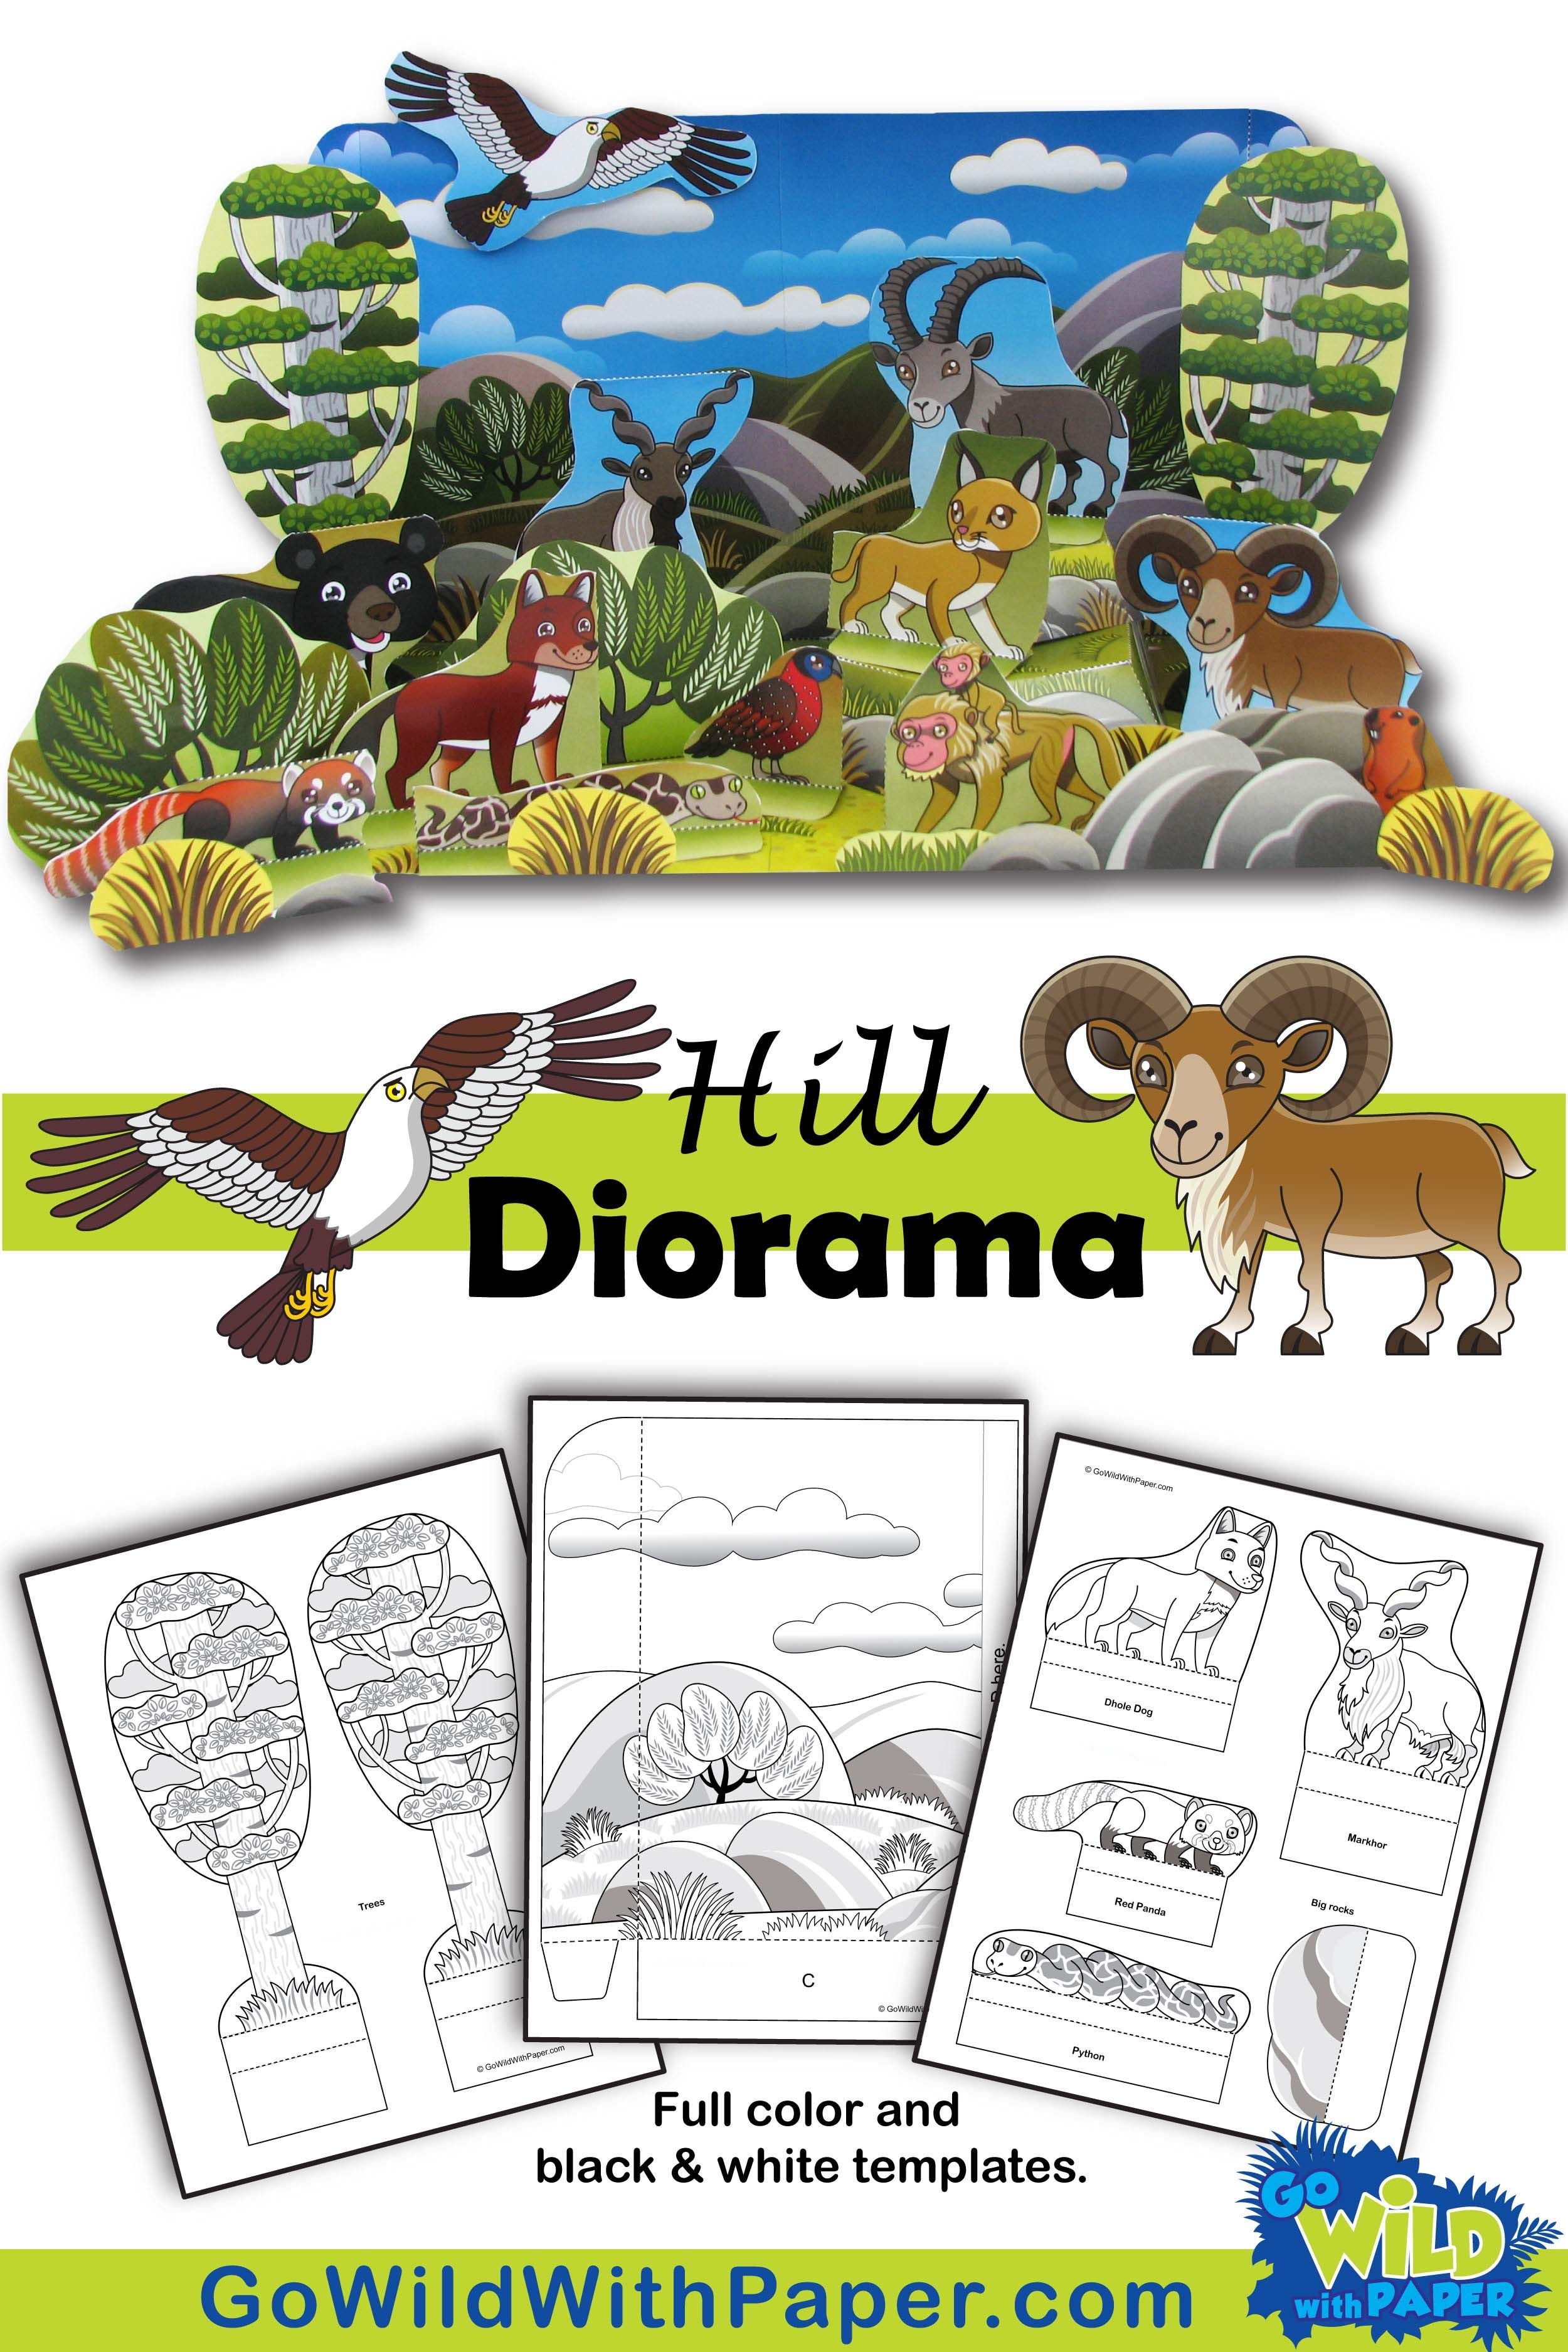 Hill Diorama Project Animal Habitat Activity Template Habitat Activities Animal Habitats Diorama